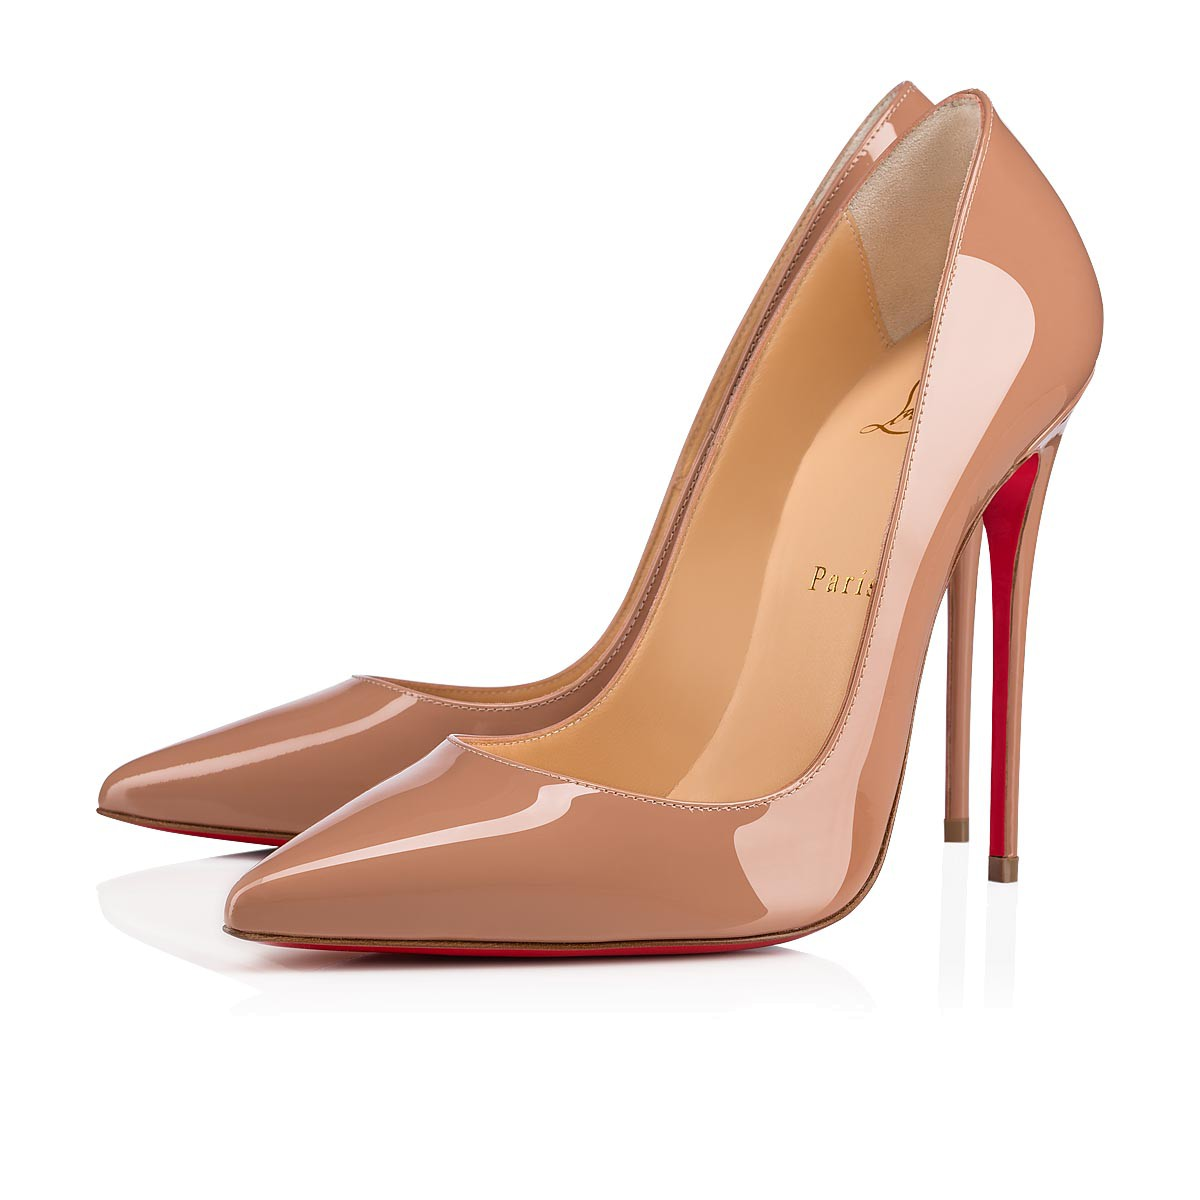 f067c8ba3d So Kate 120 Nude Patent Leather - Women Shoes - Christian Louboutin